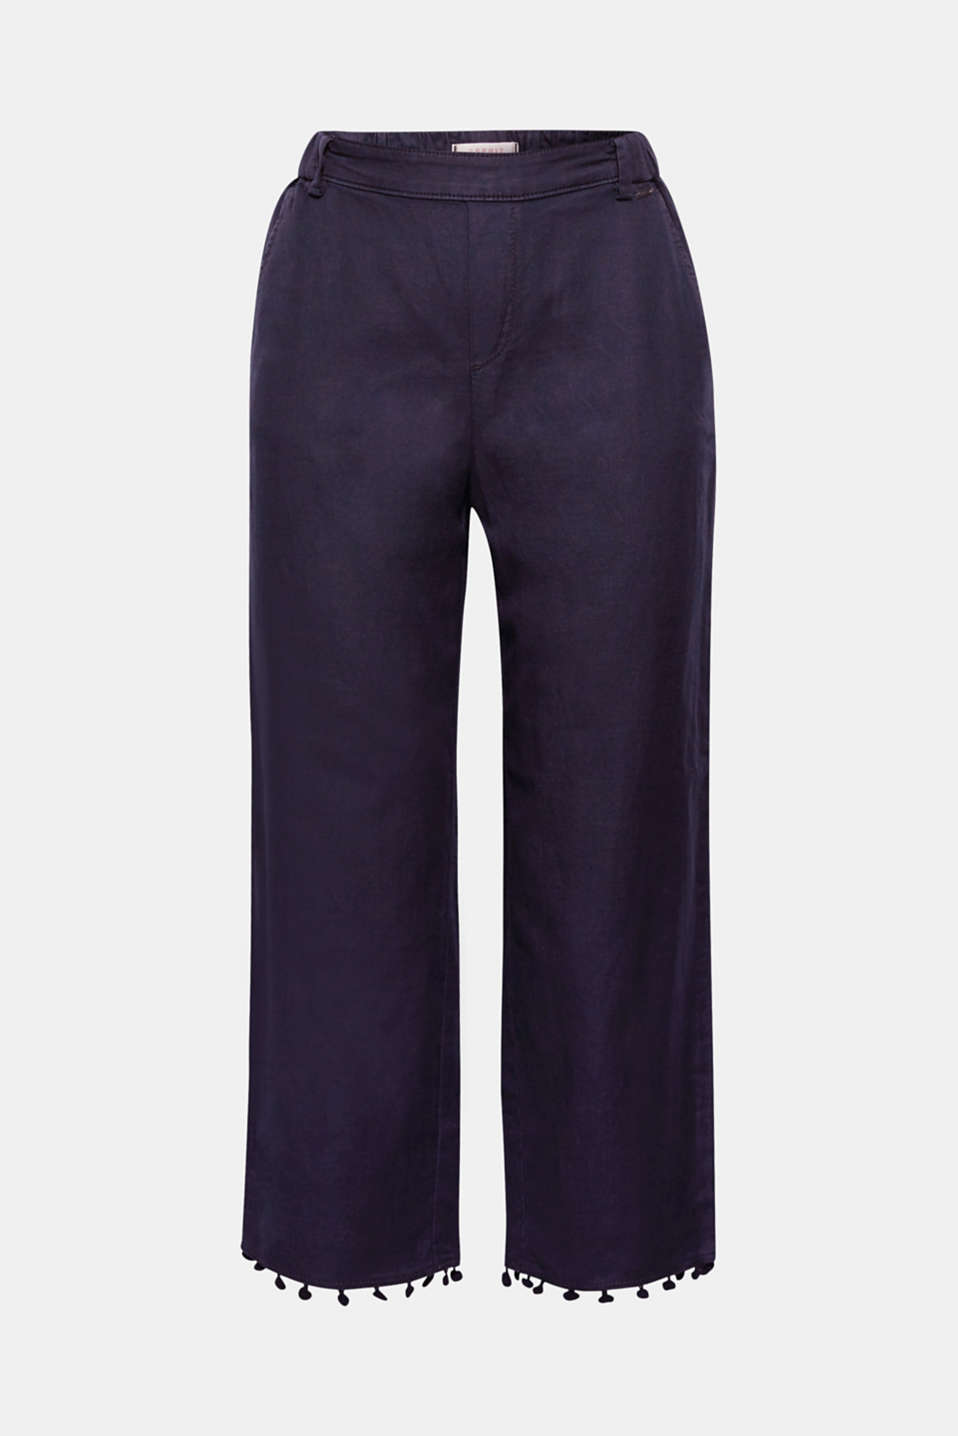 The small pompoms on the leg hems of these wide, cropped-leg chinos are cheerful and trendy!